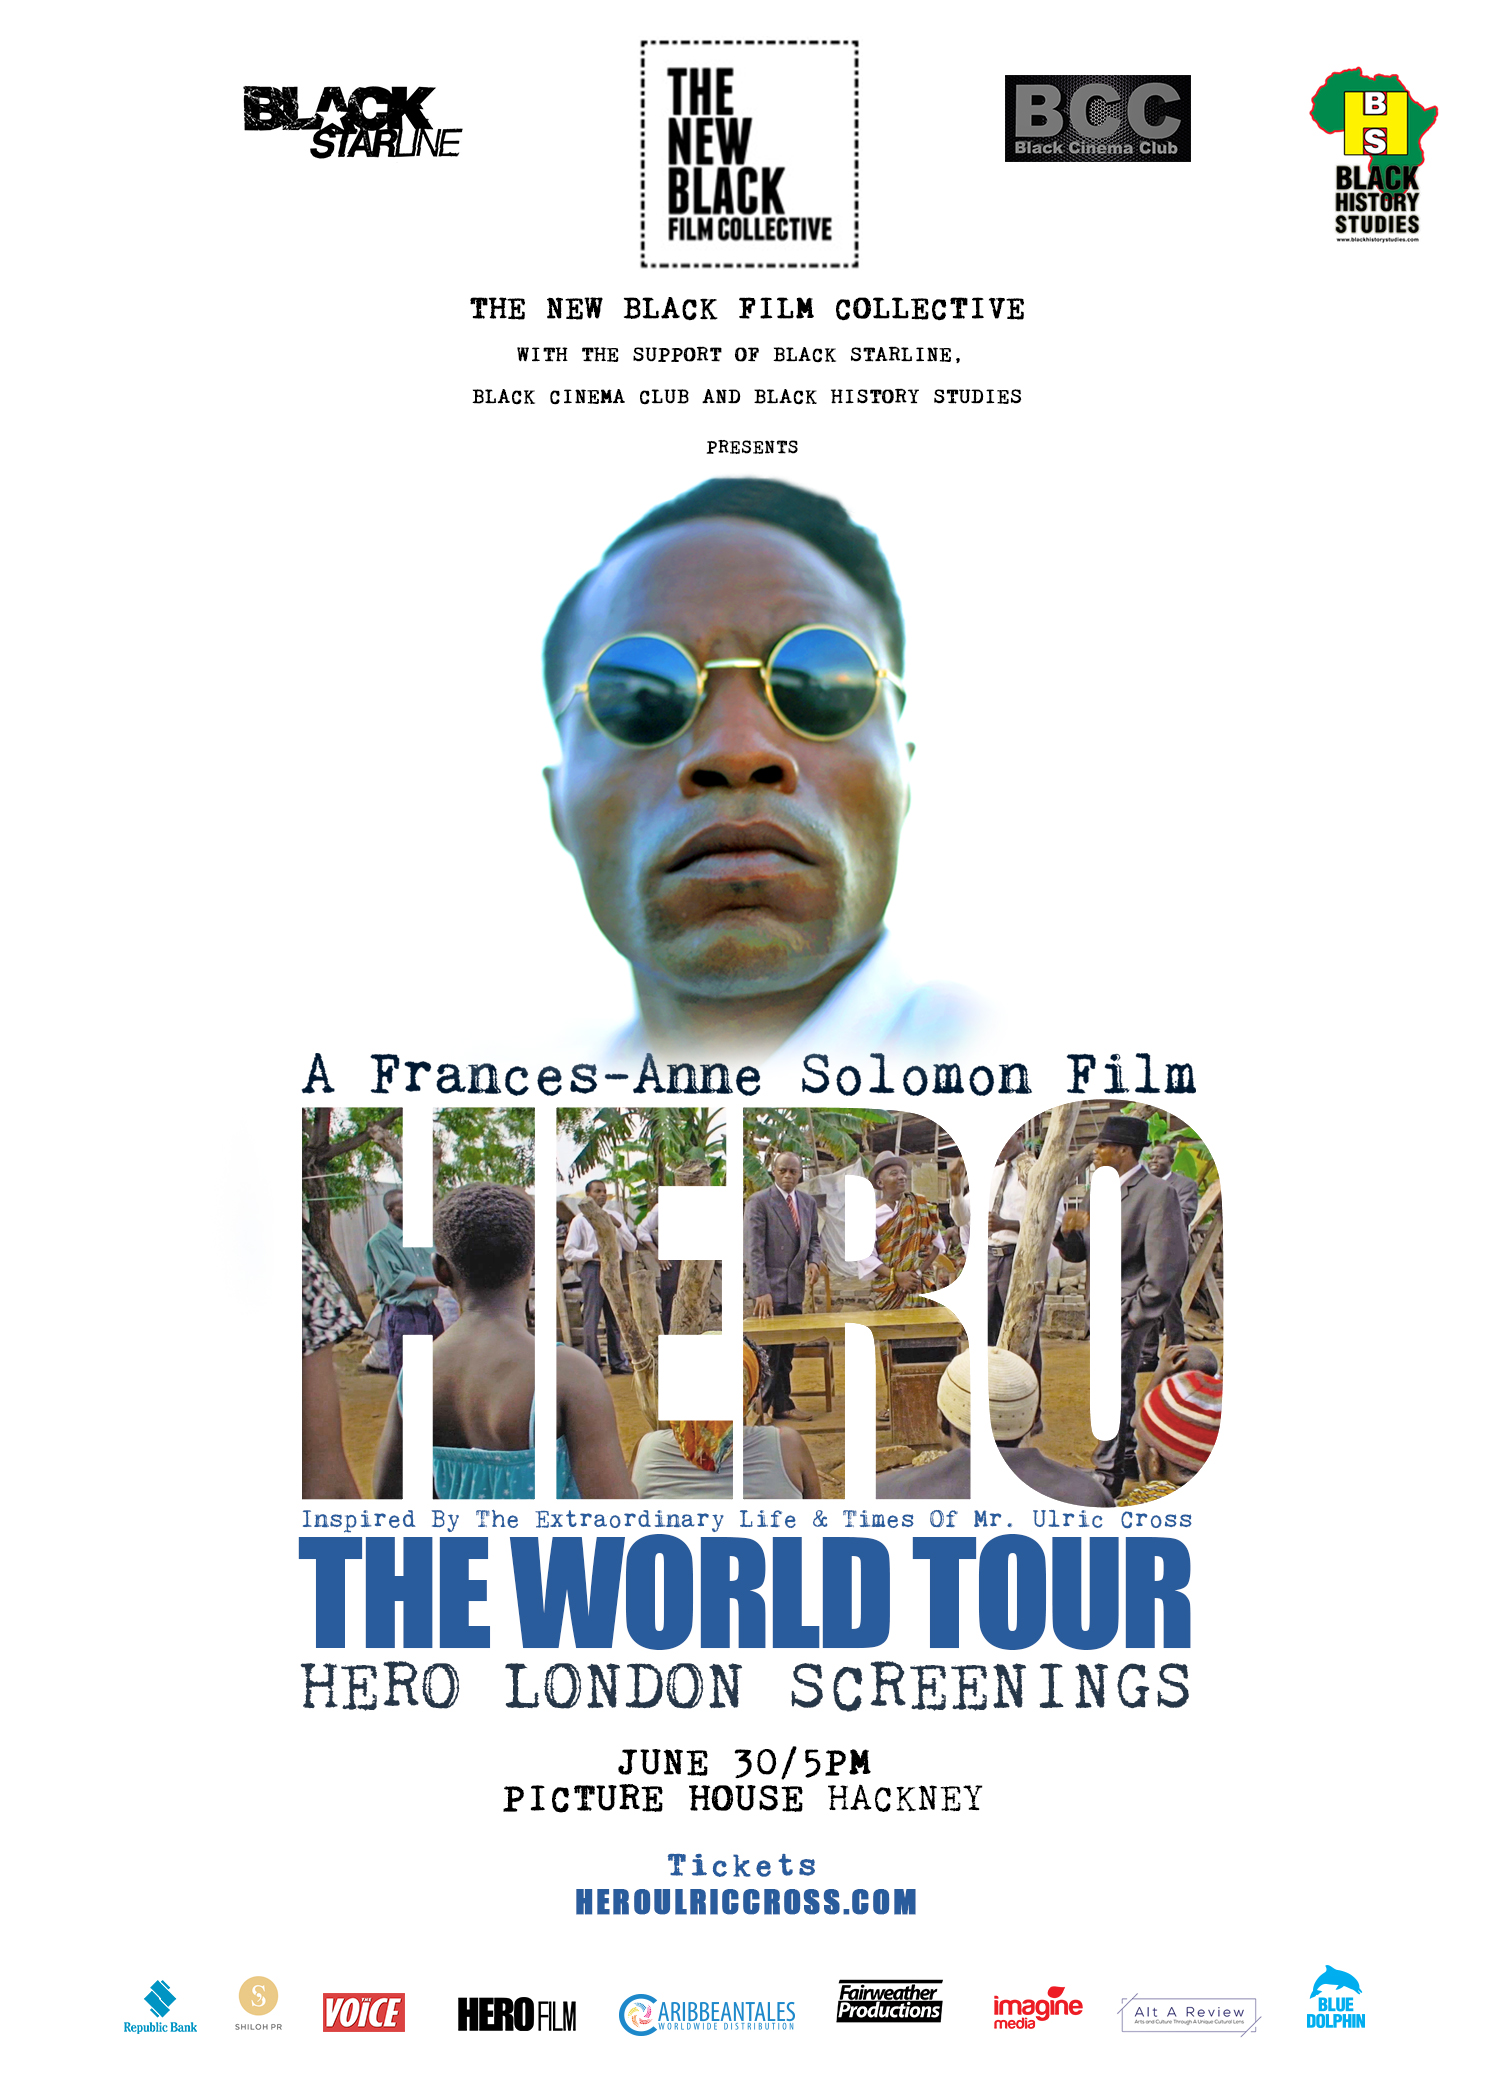 'HERO'  Inspired by the Extraordinary Life and Times of Mr. Ulric Cross